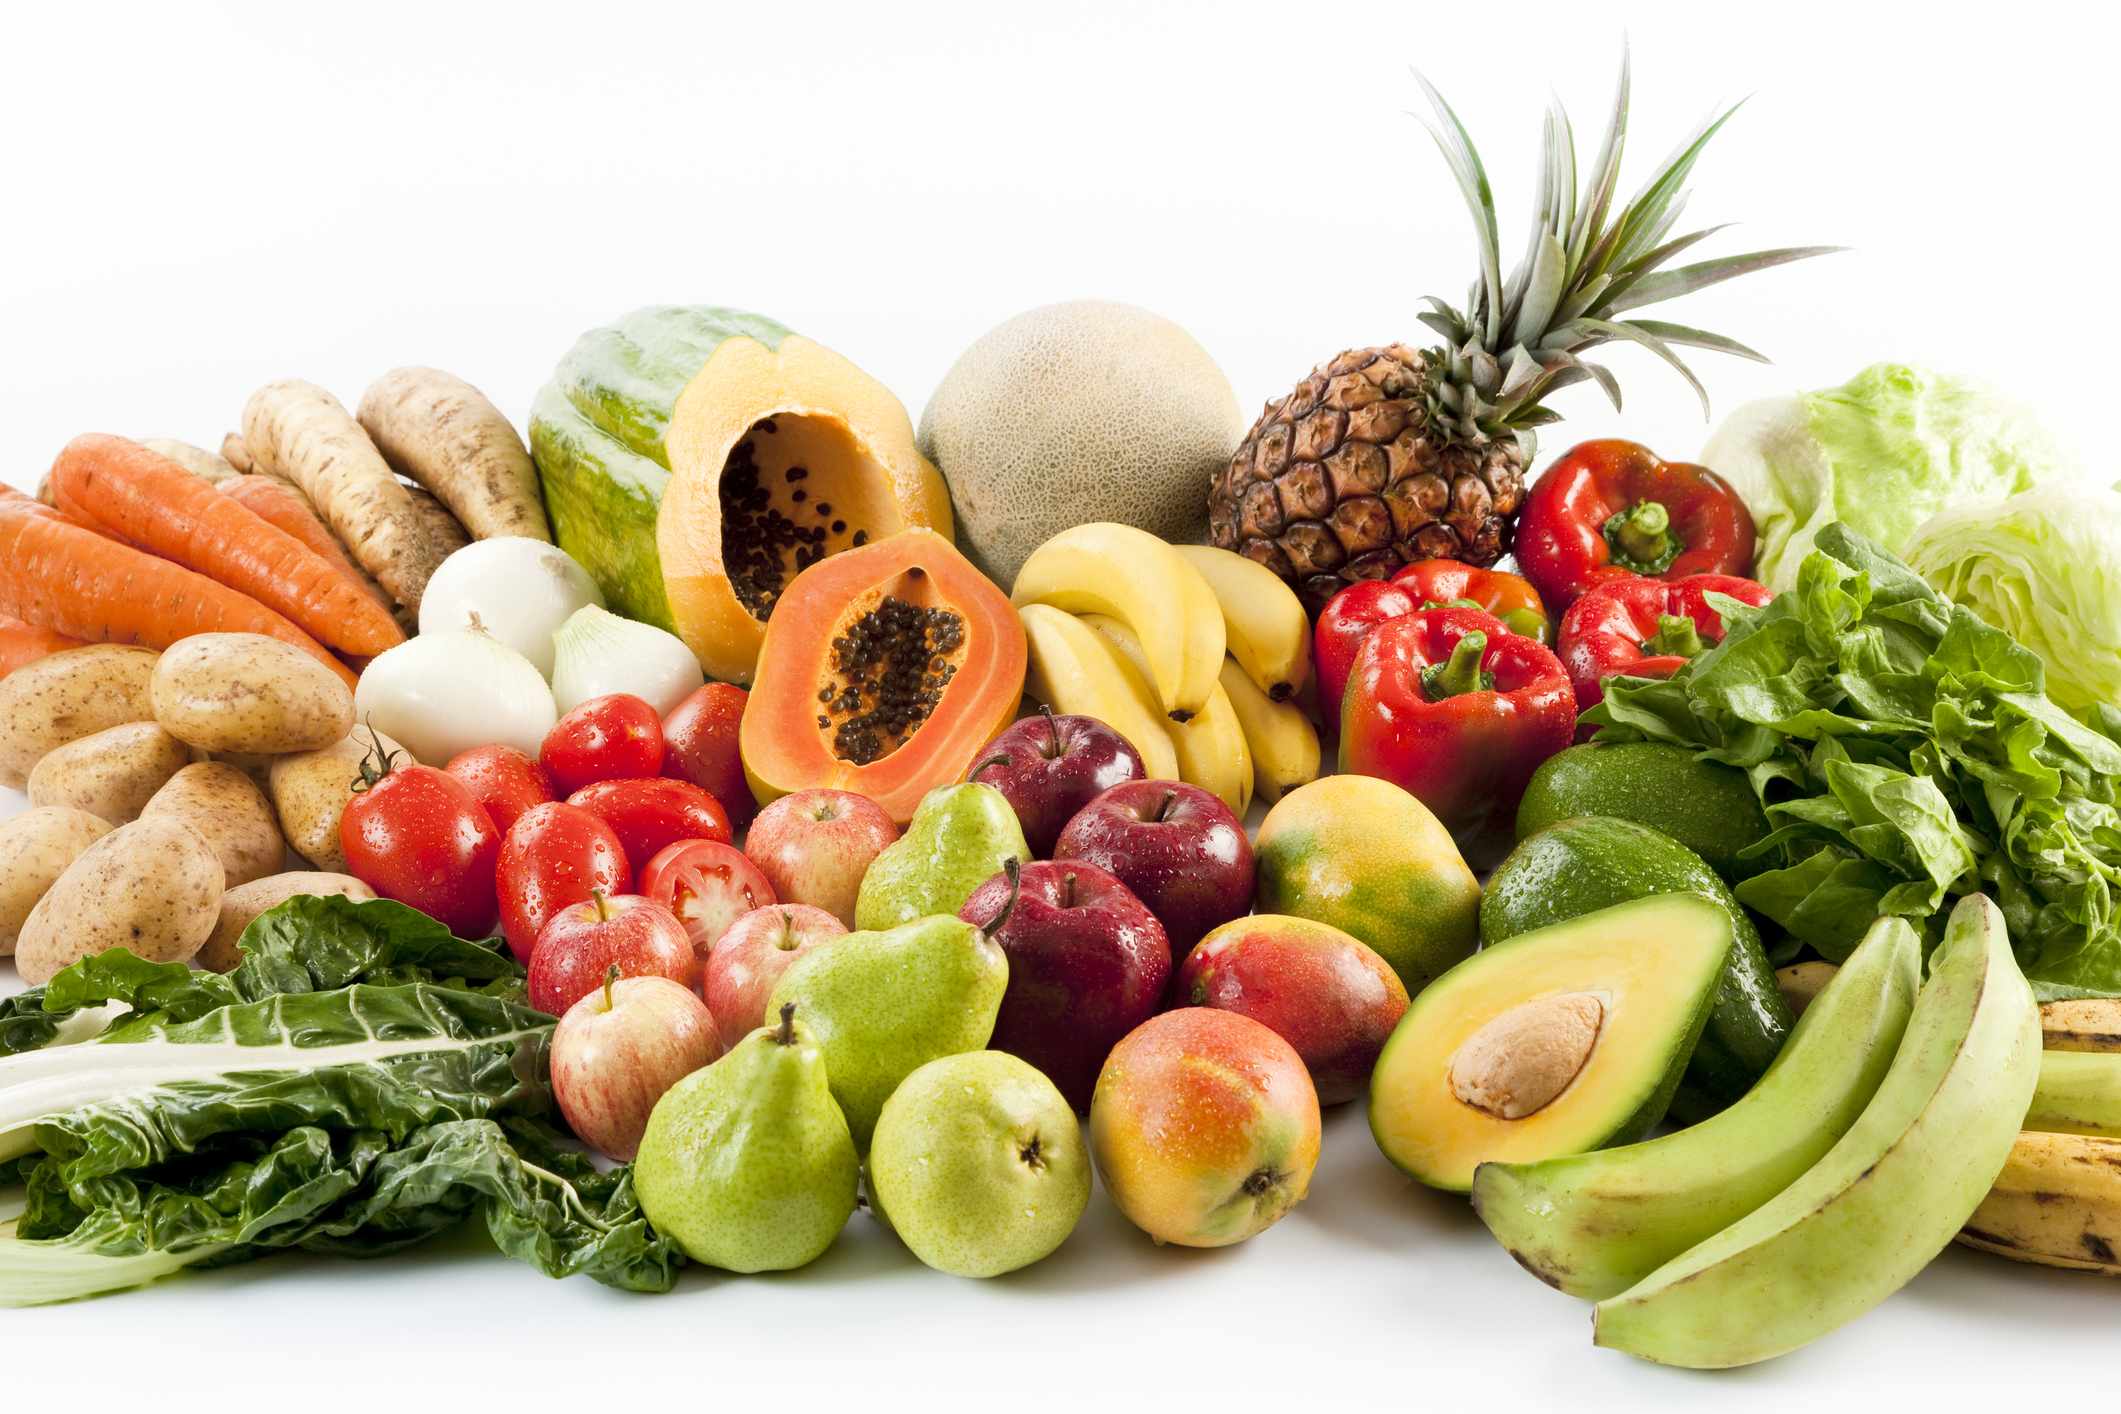 80 percent of the diet - To heal from any condition the body is in need of hydration and healing nutrients of fruits and vegetables.